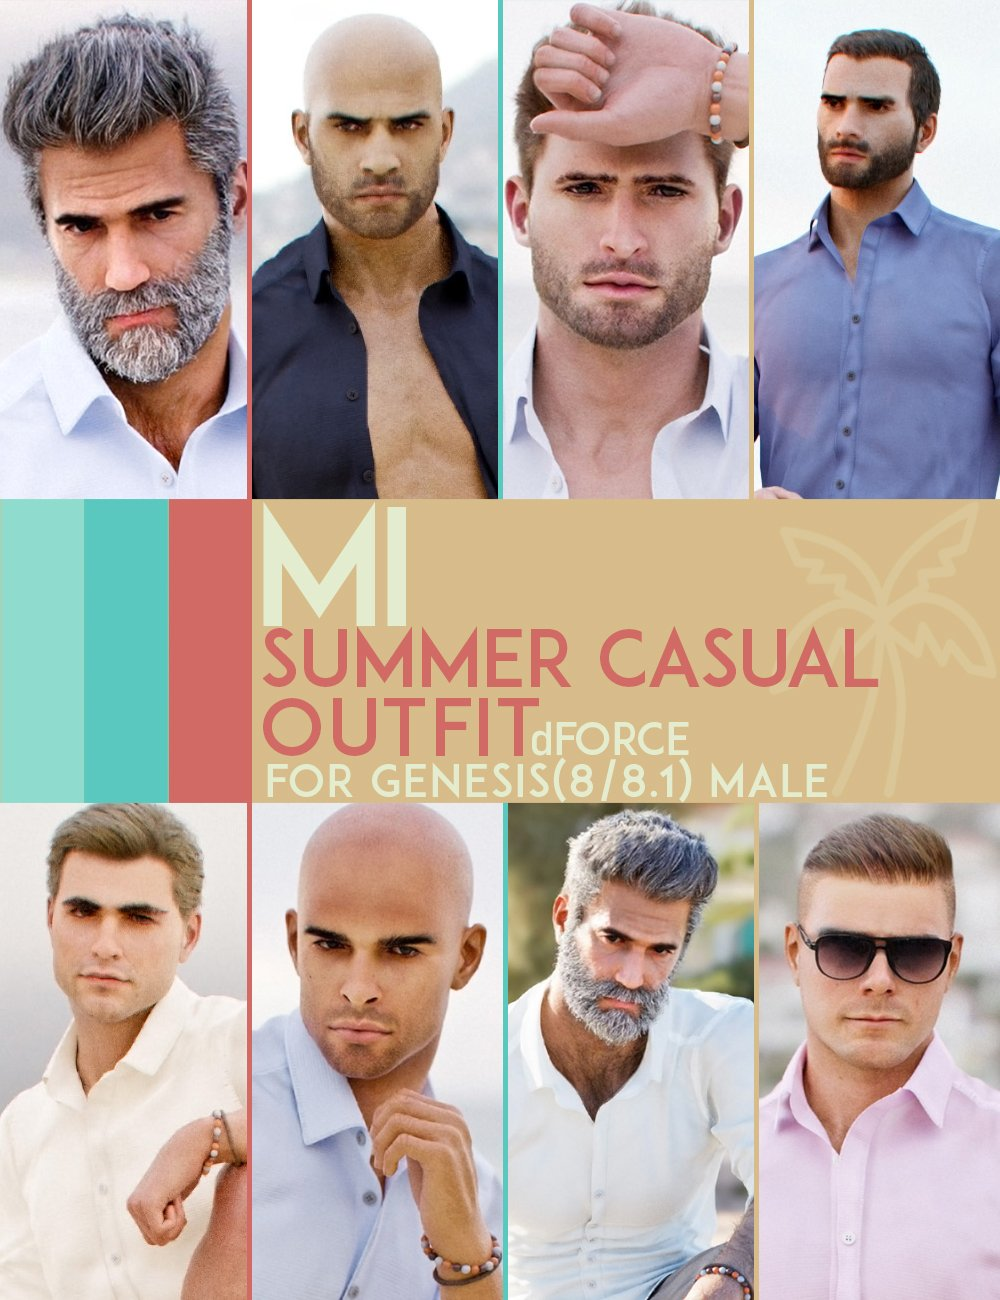 dForce MI Summer Casual Outfit for Genesis 8 and 8.1 Males by: mal3Imagery, 3D Models by Daz 3D